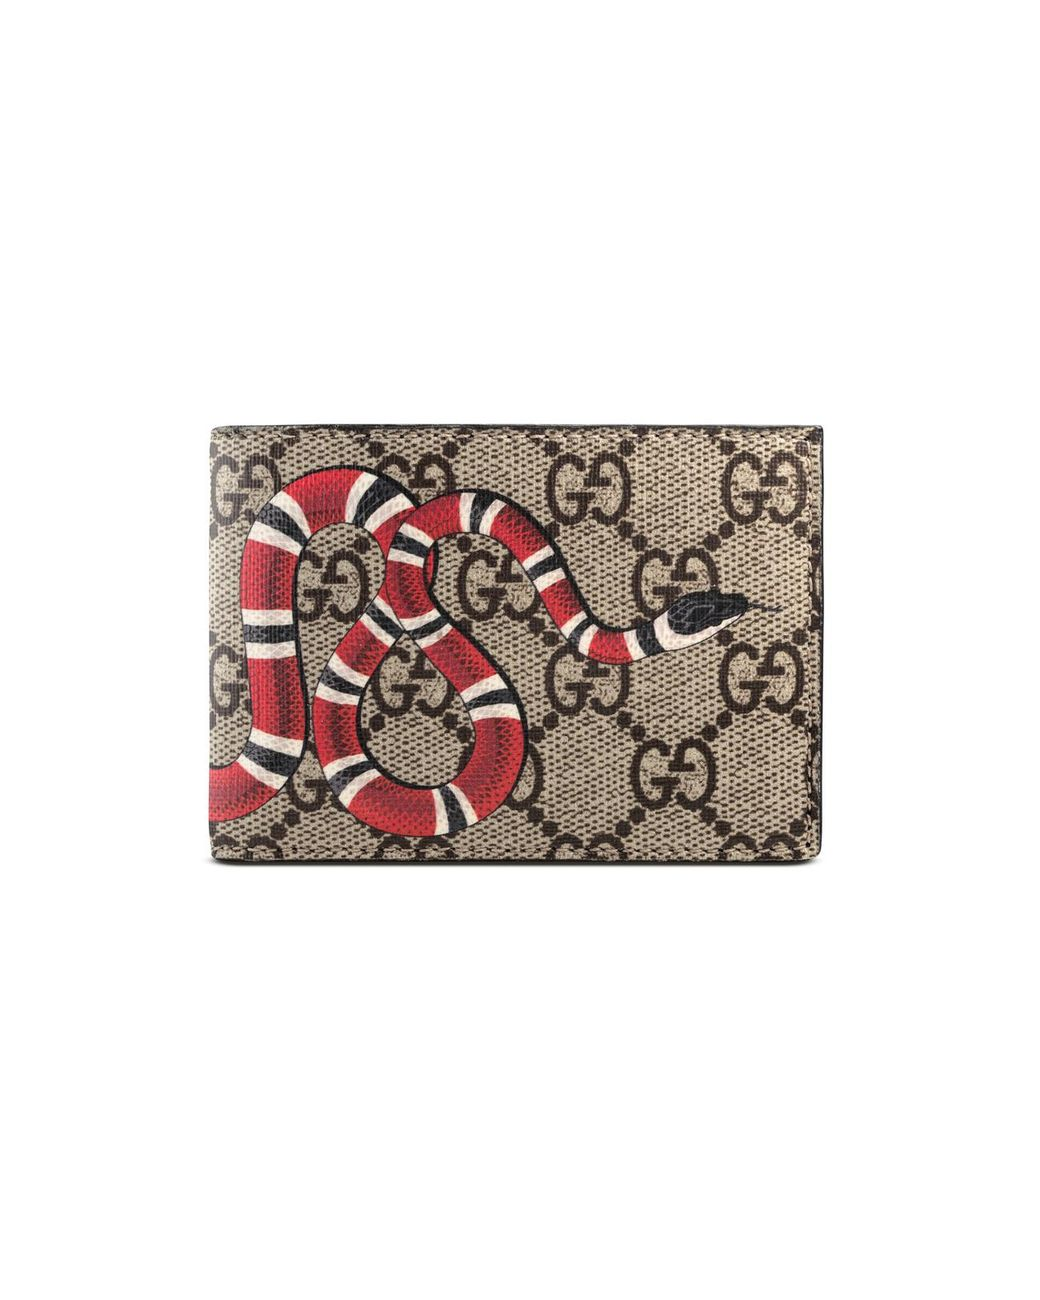 b167a07046c8 Gucci Kingsnake Print GG Supreme Wallet for Men - Save 24% - Lyst